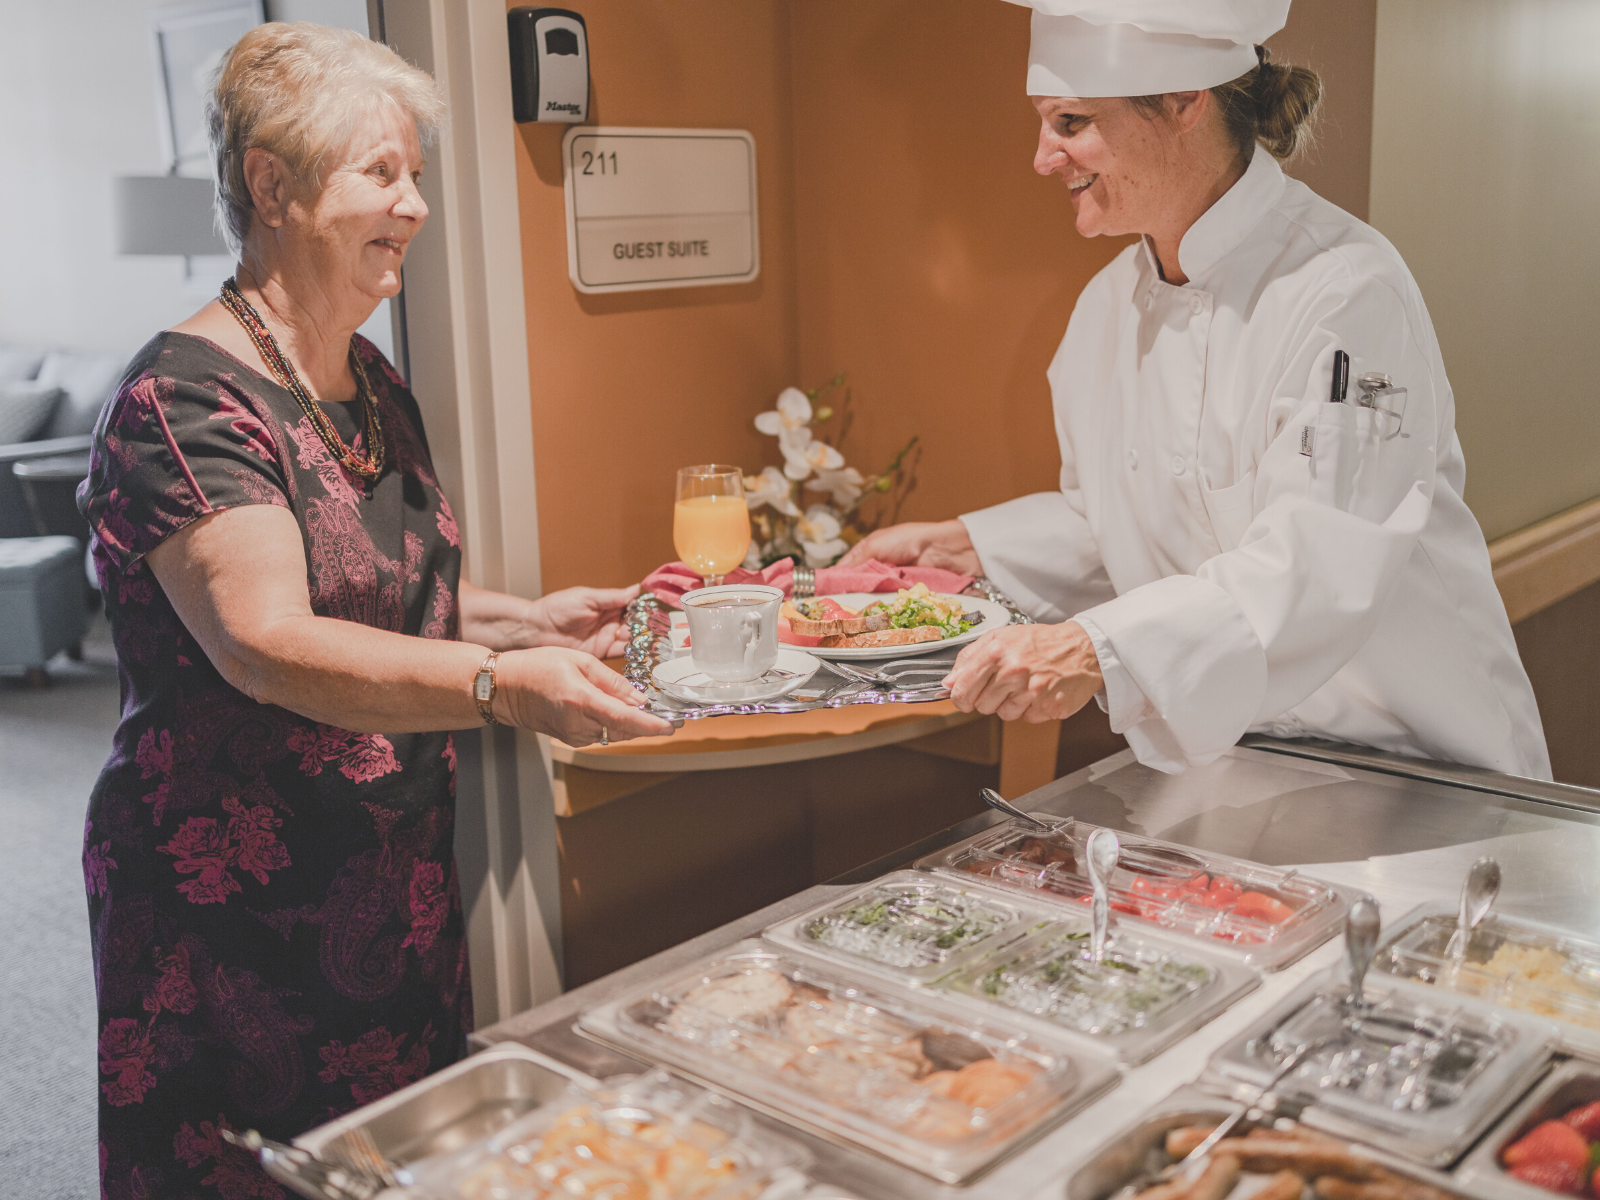 Chef serving senior care resident in their room and handing meal tray